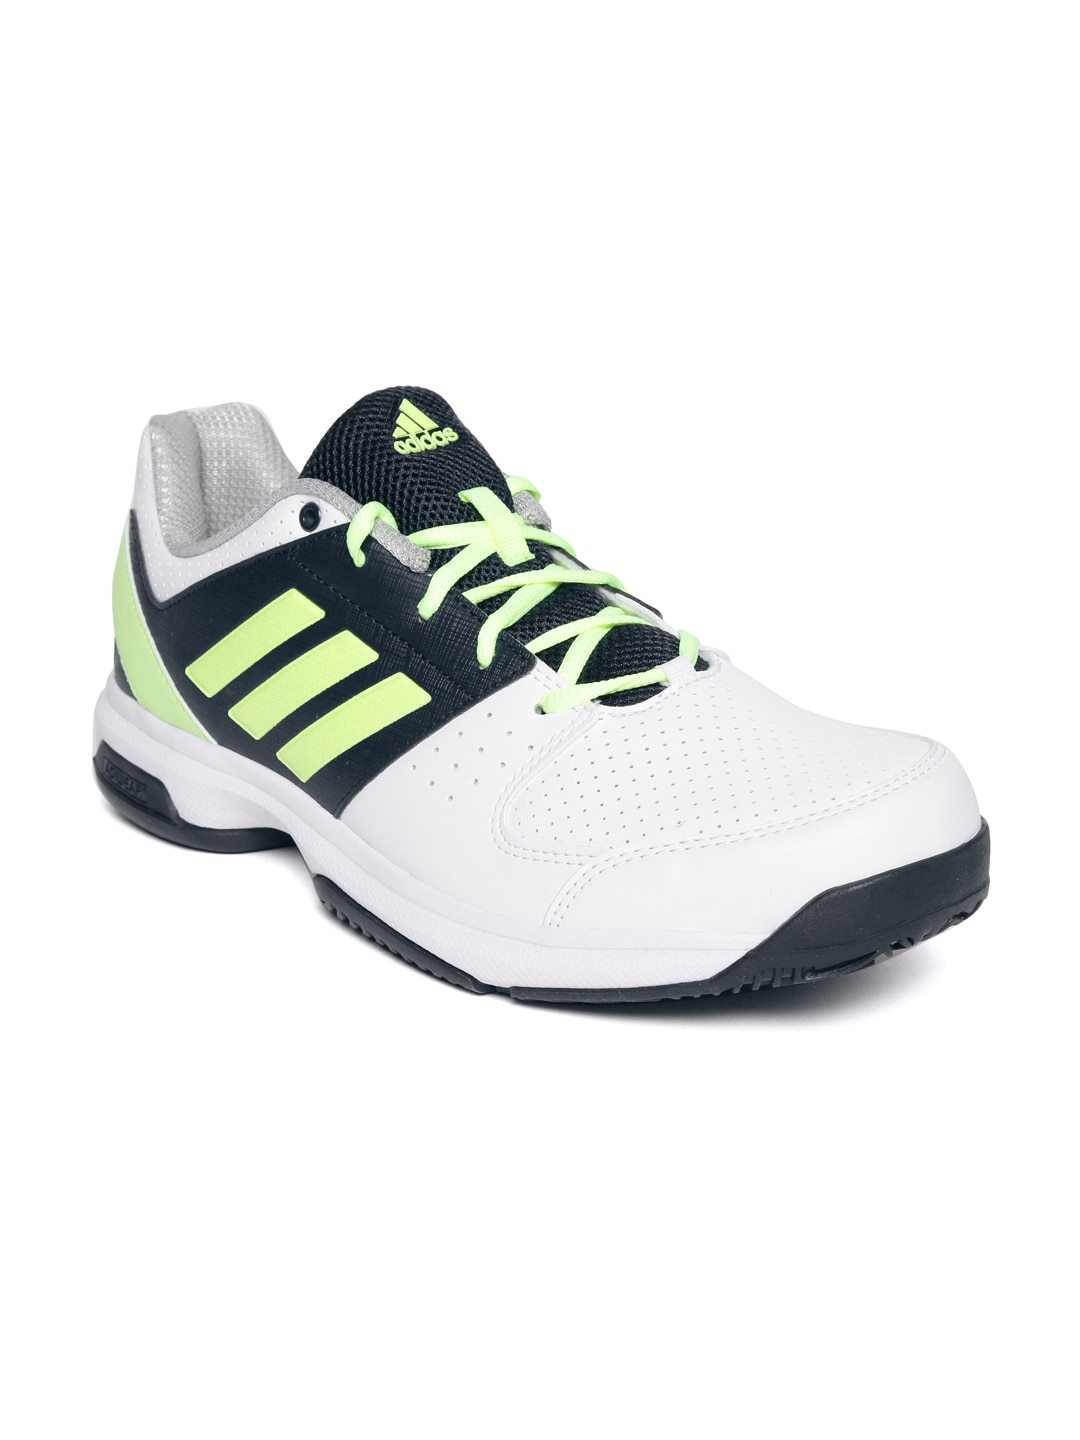 ce6b2dbc6e7 Adidas Sports Shoes - Buy Addidas Sports Shoes Online